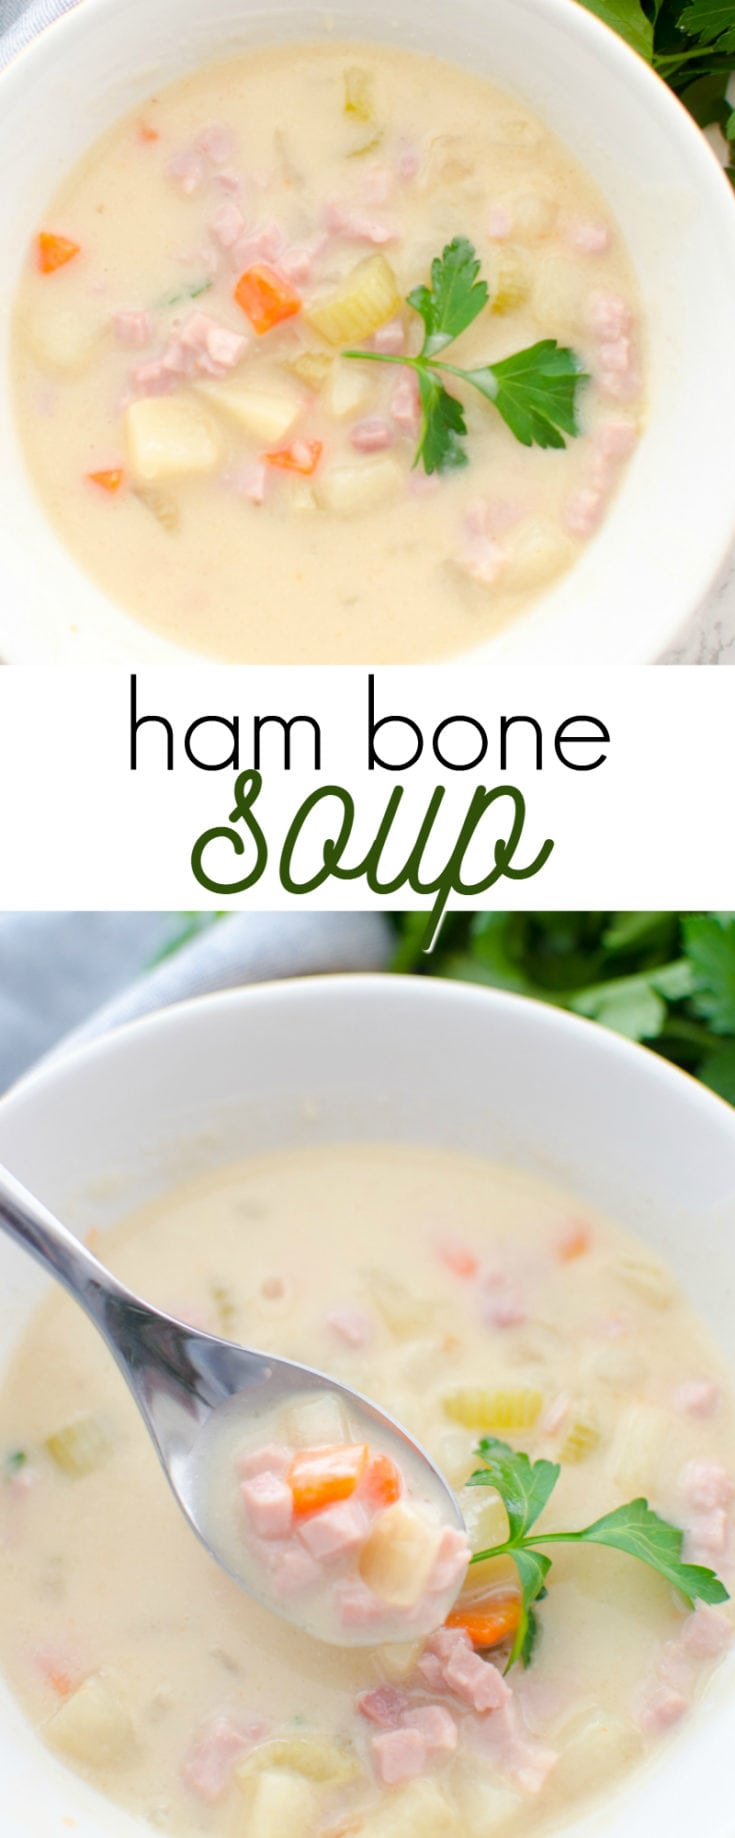 This recipe for ham bone soup is a great way to use up leftover ham: creamy and loaded with ham, potatoes and veggies!